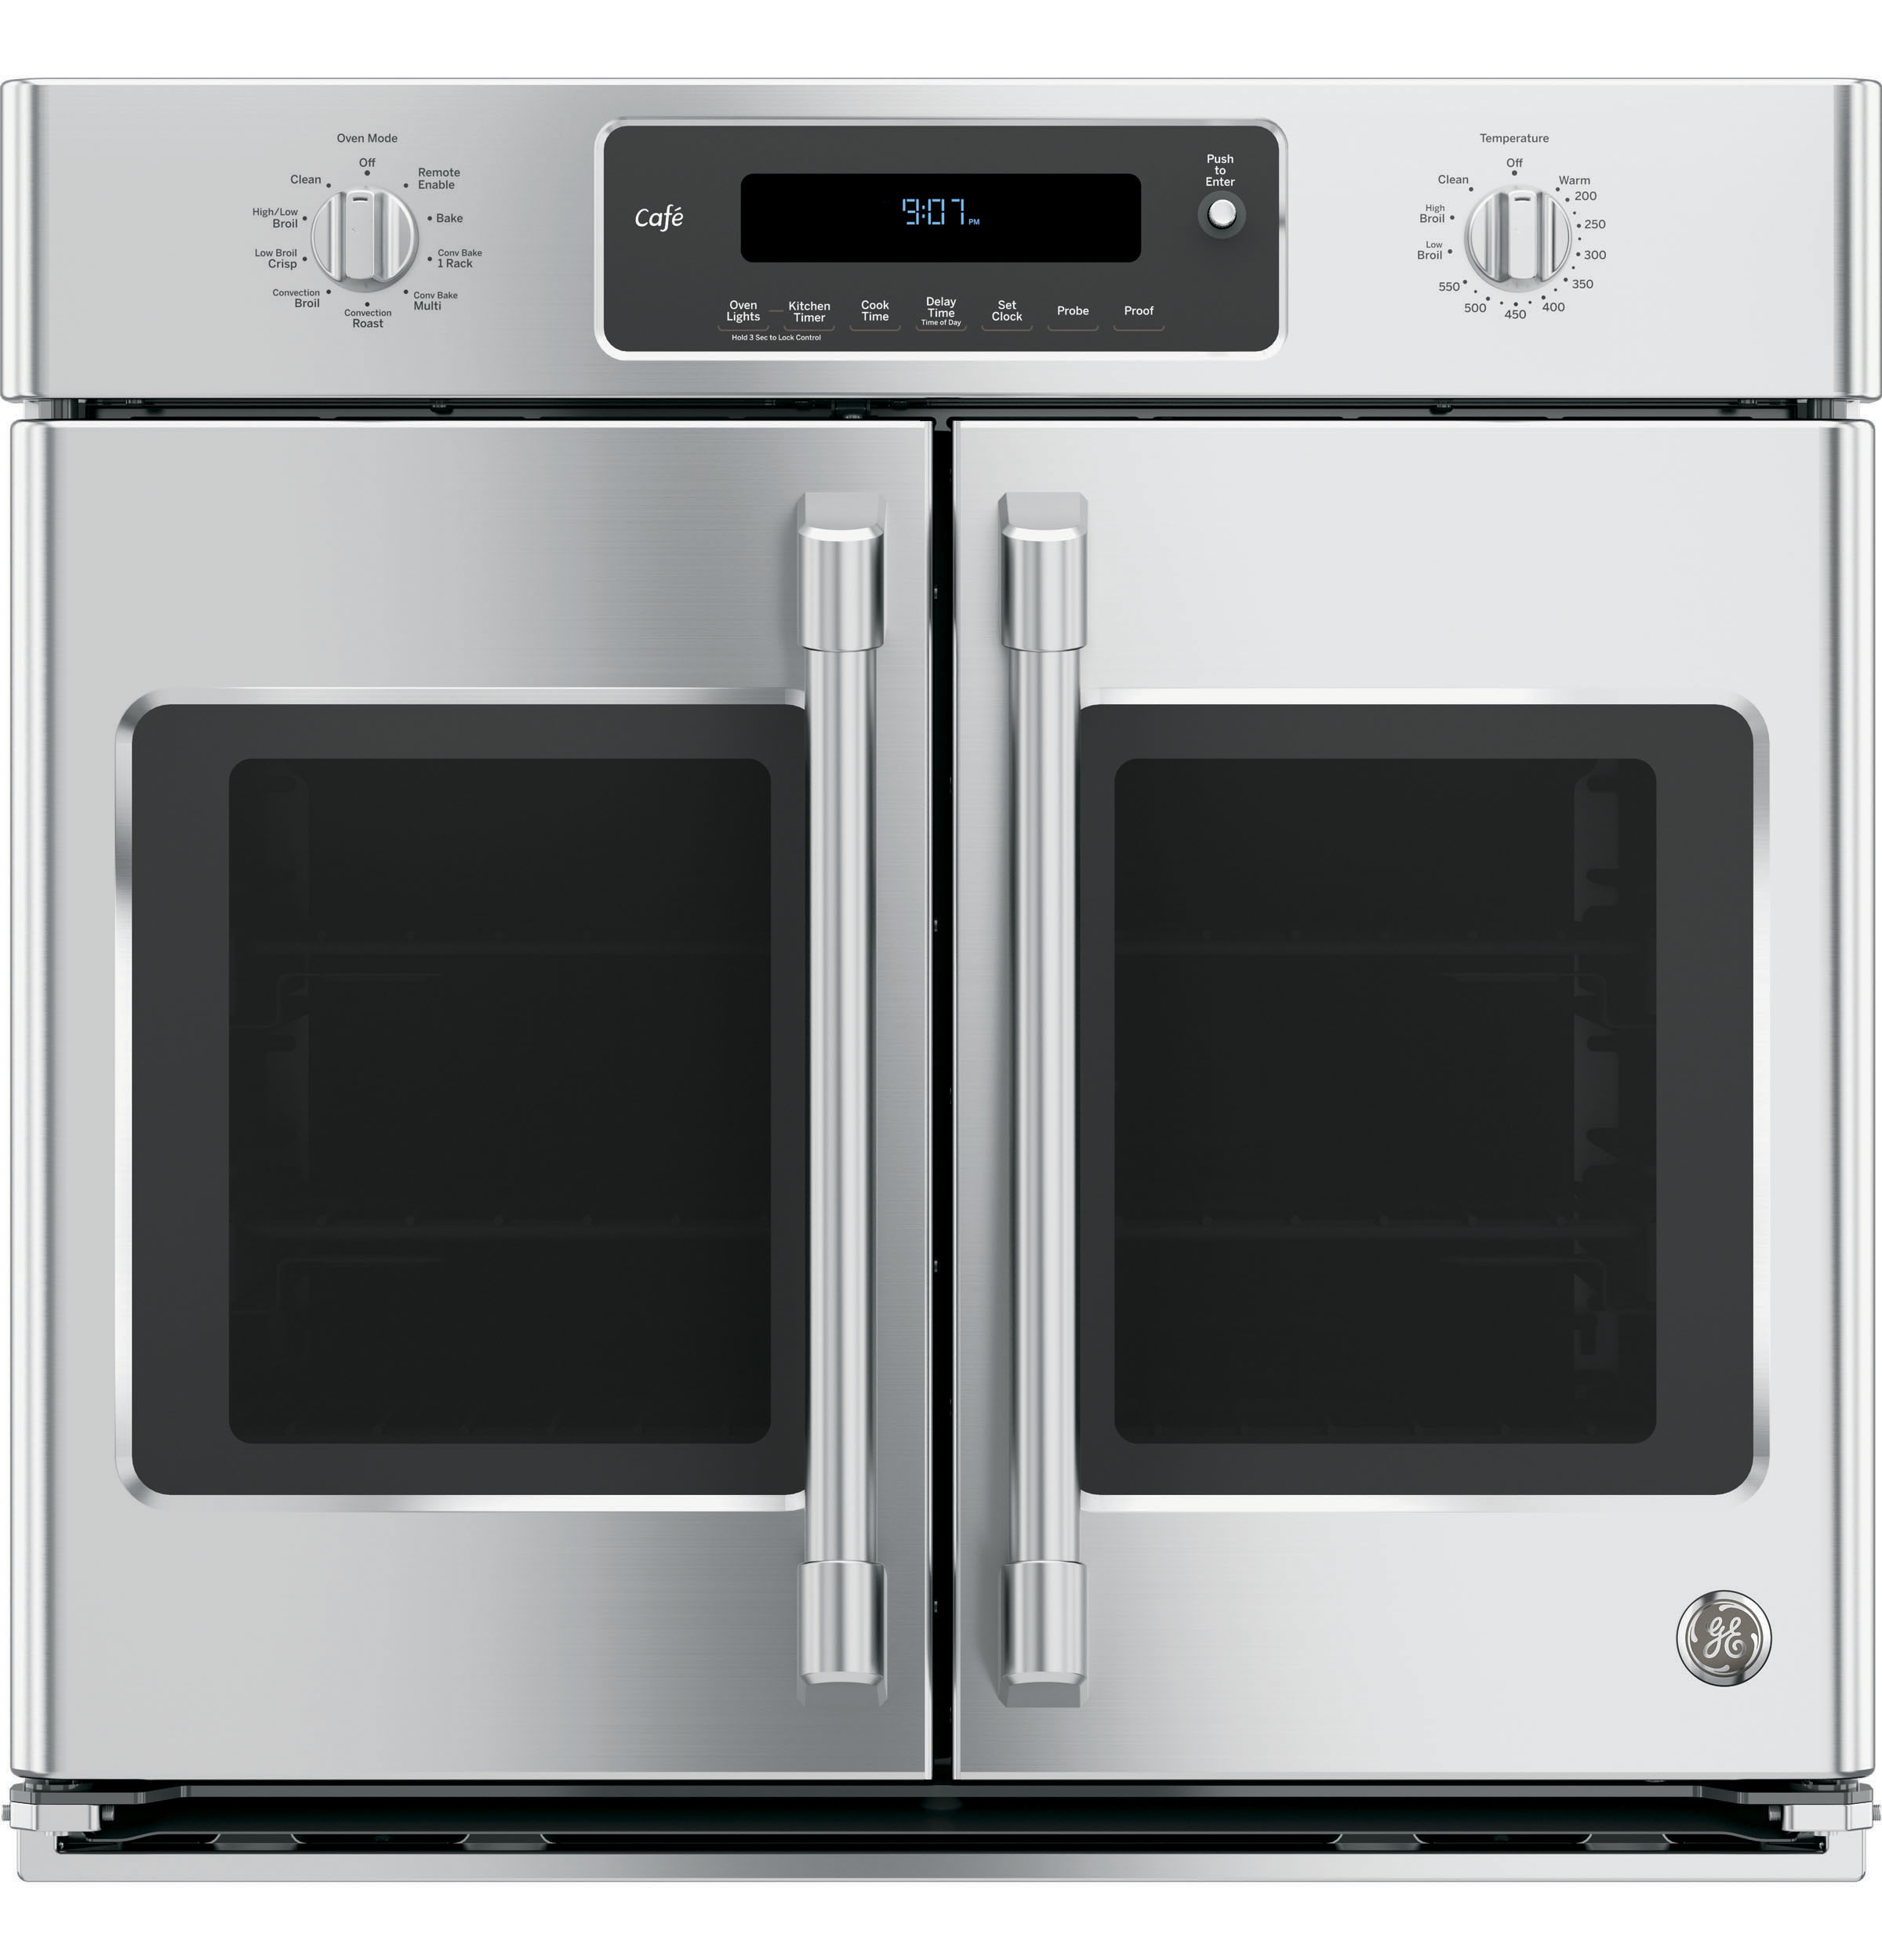 "GE Cafe GE Café™ Series 30"" Built-In French-Door Single Convection Wall Oven"